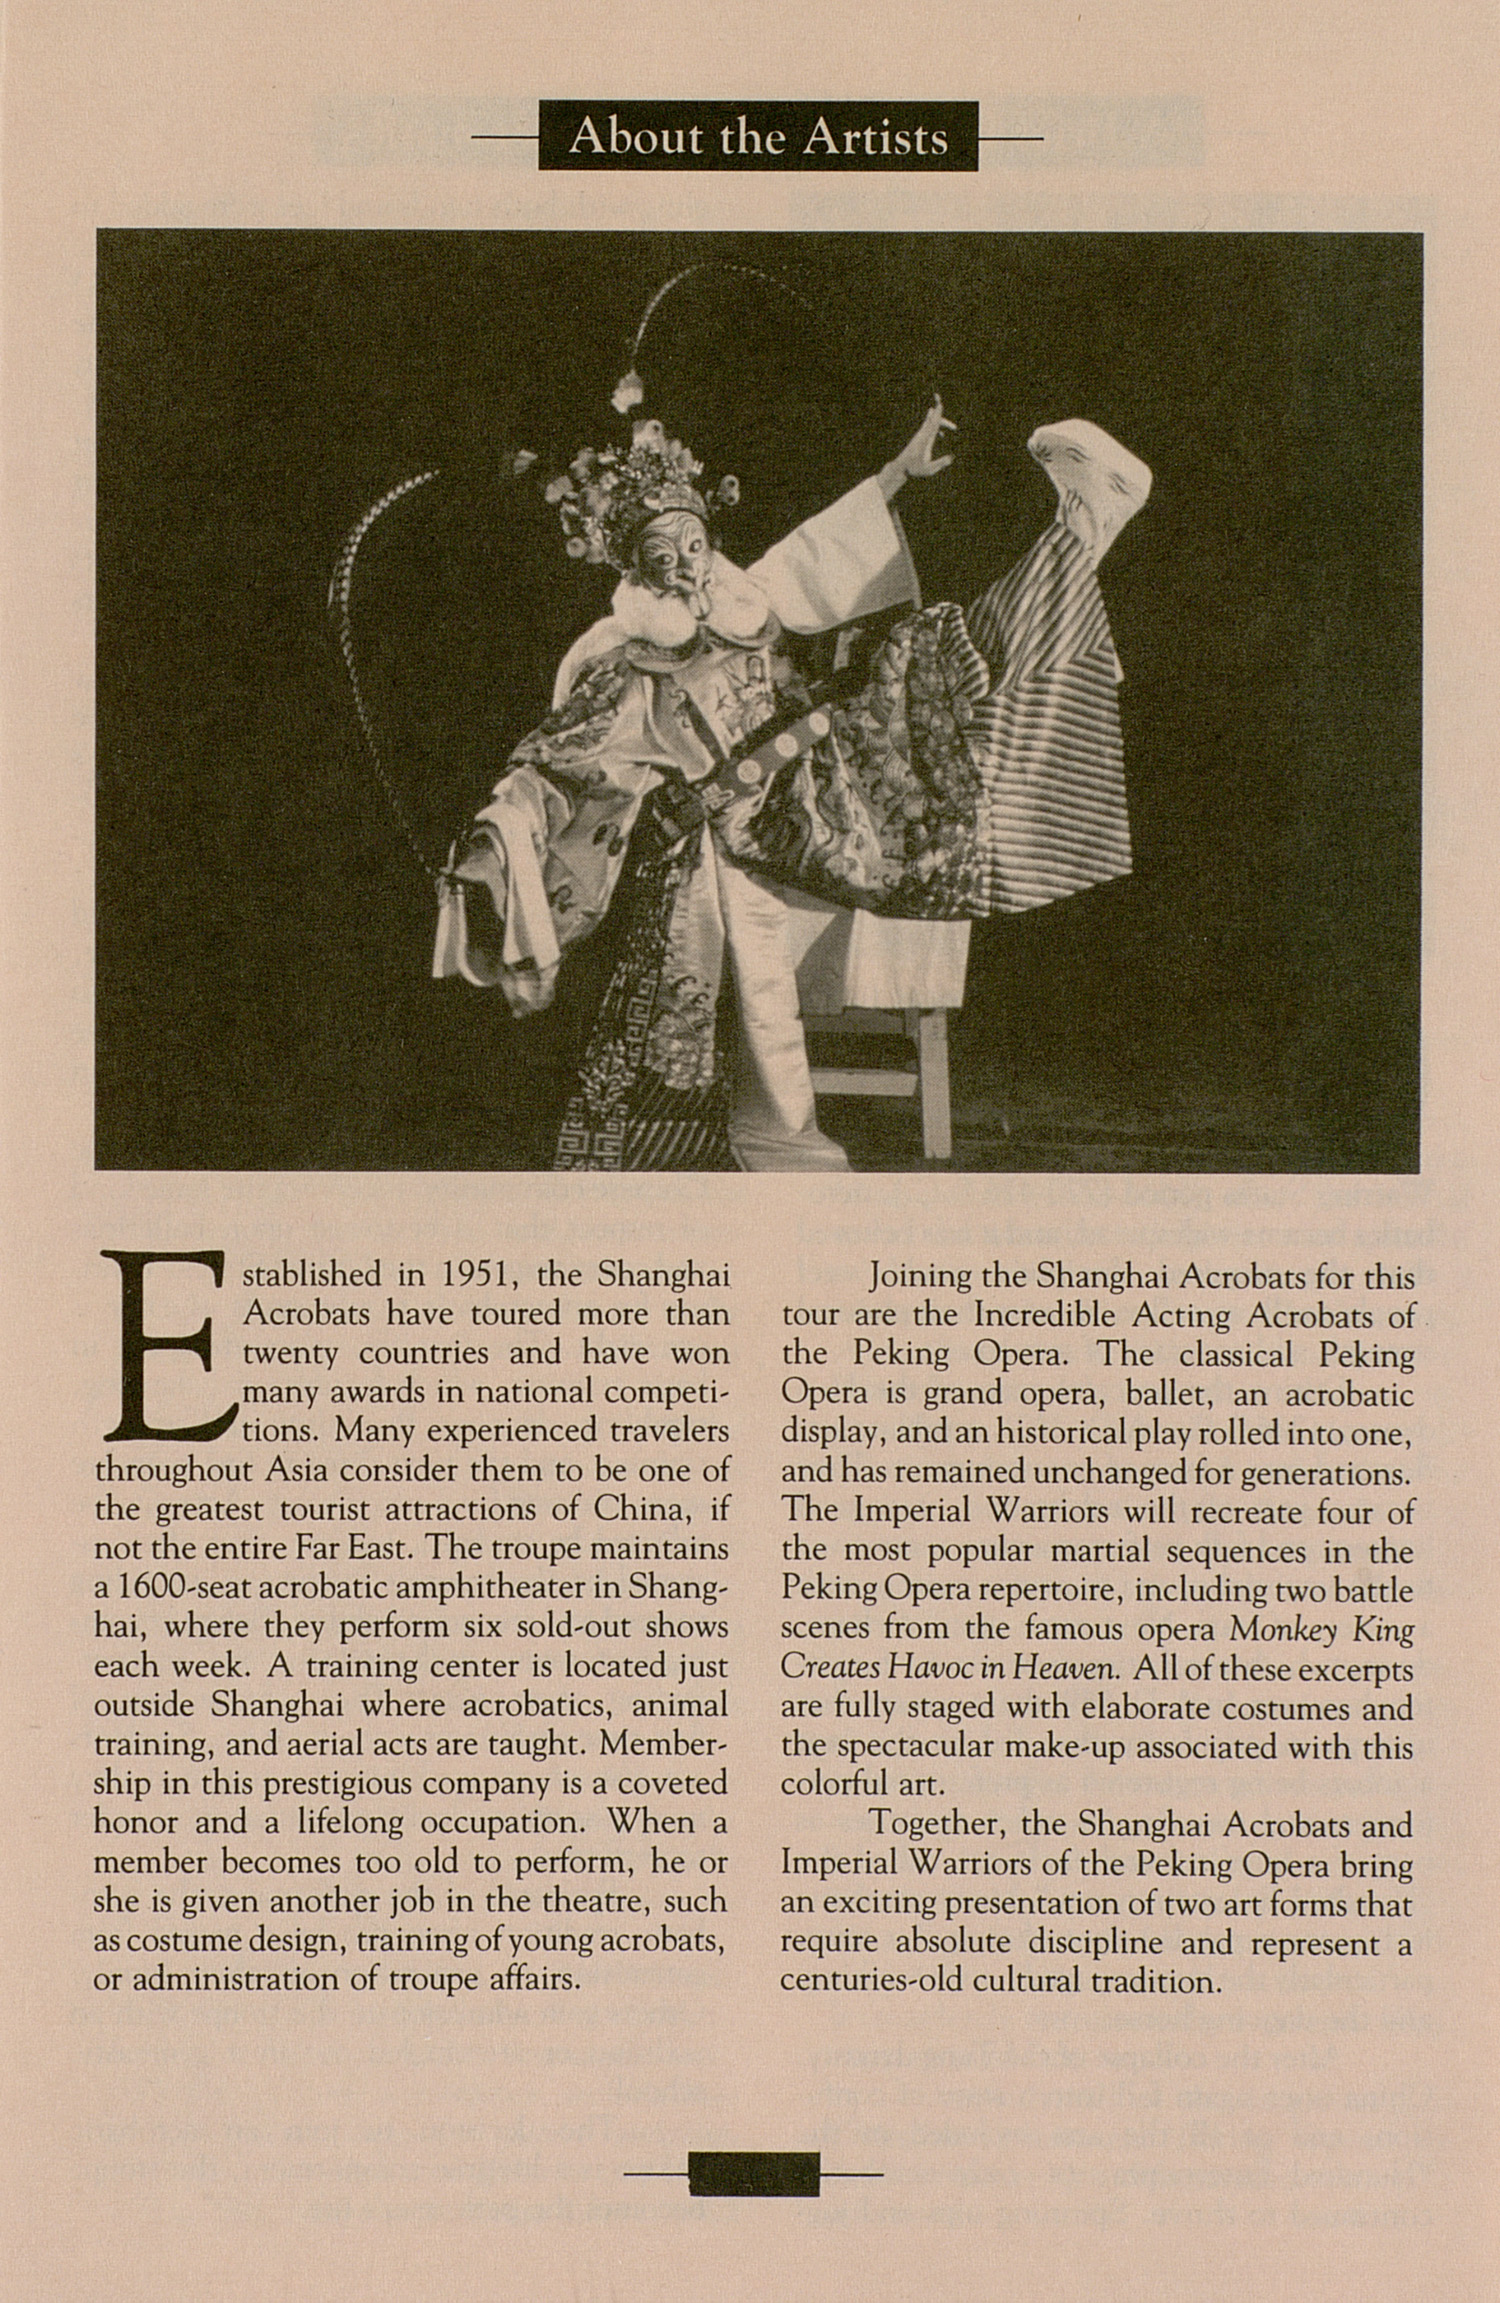 UMS Concert Program, October 28, 1990: The Shanghai Acrobats And Imperial Warriors Of The Peking Opera --  image